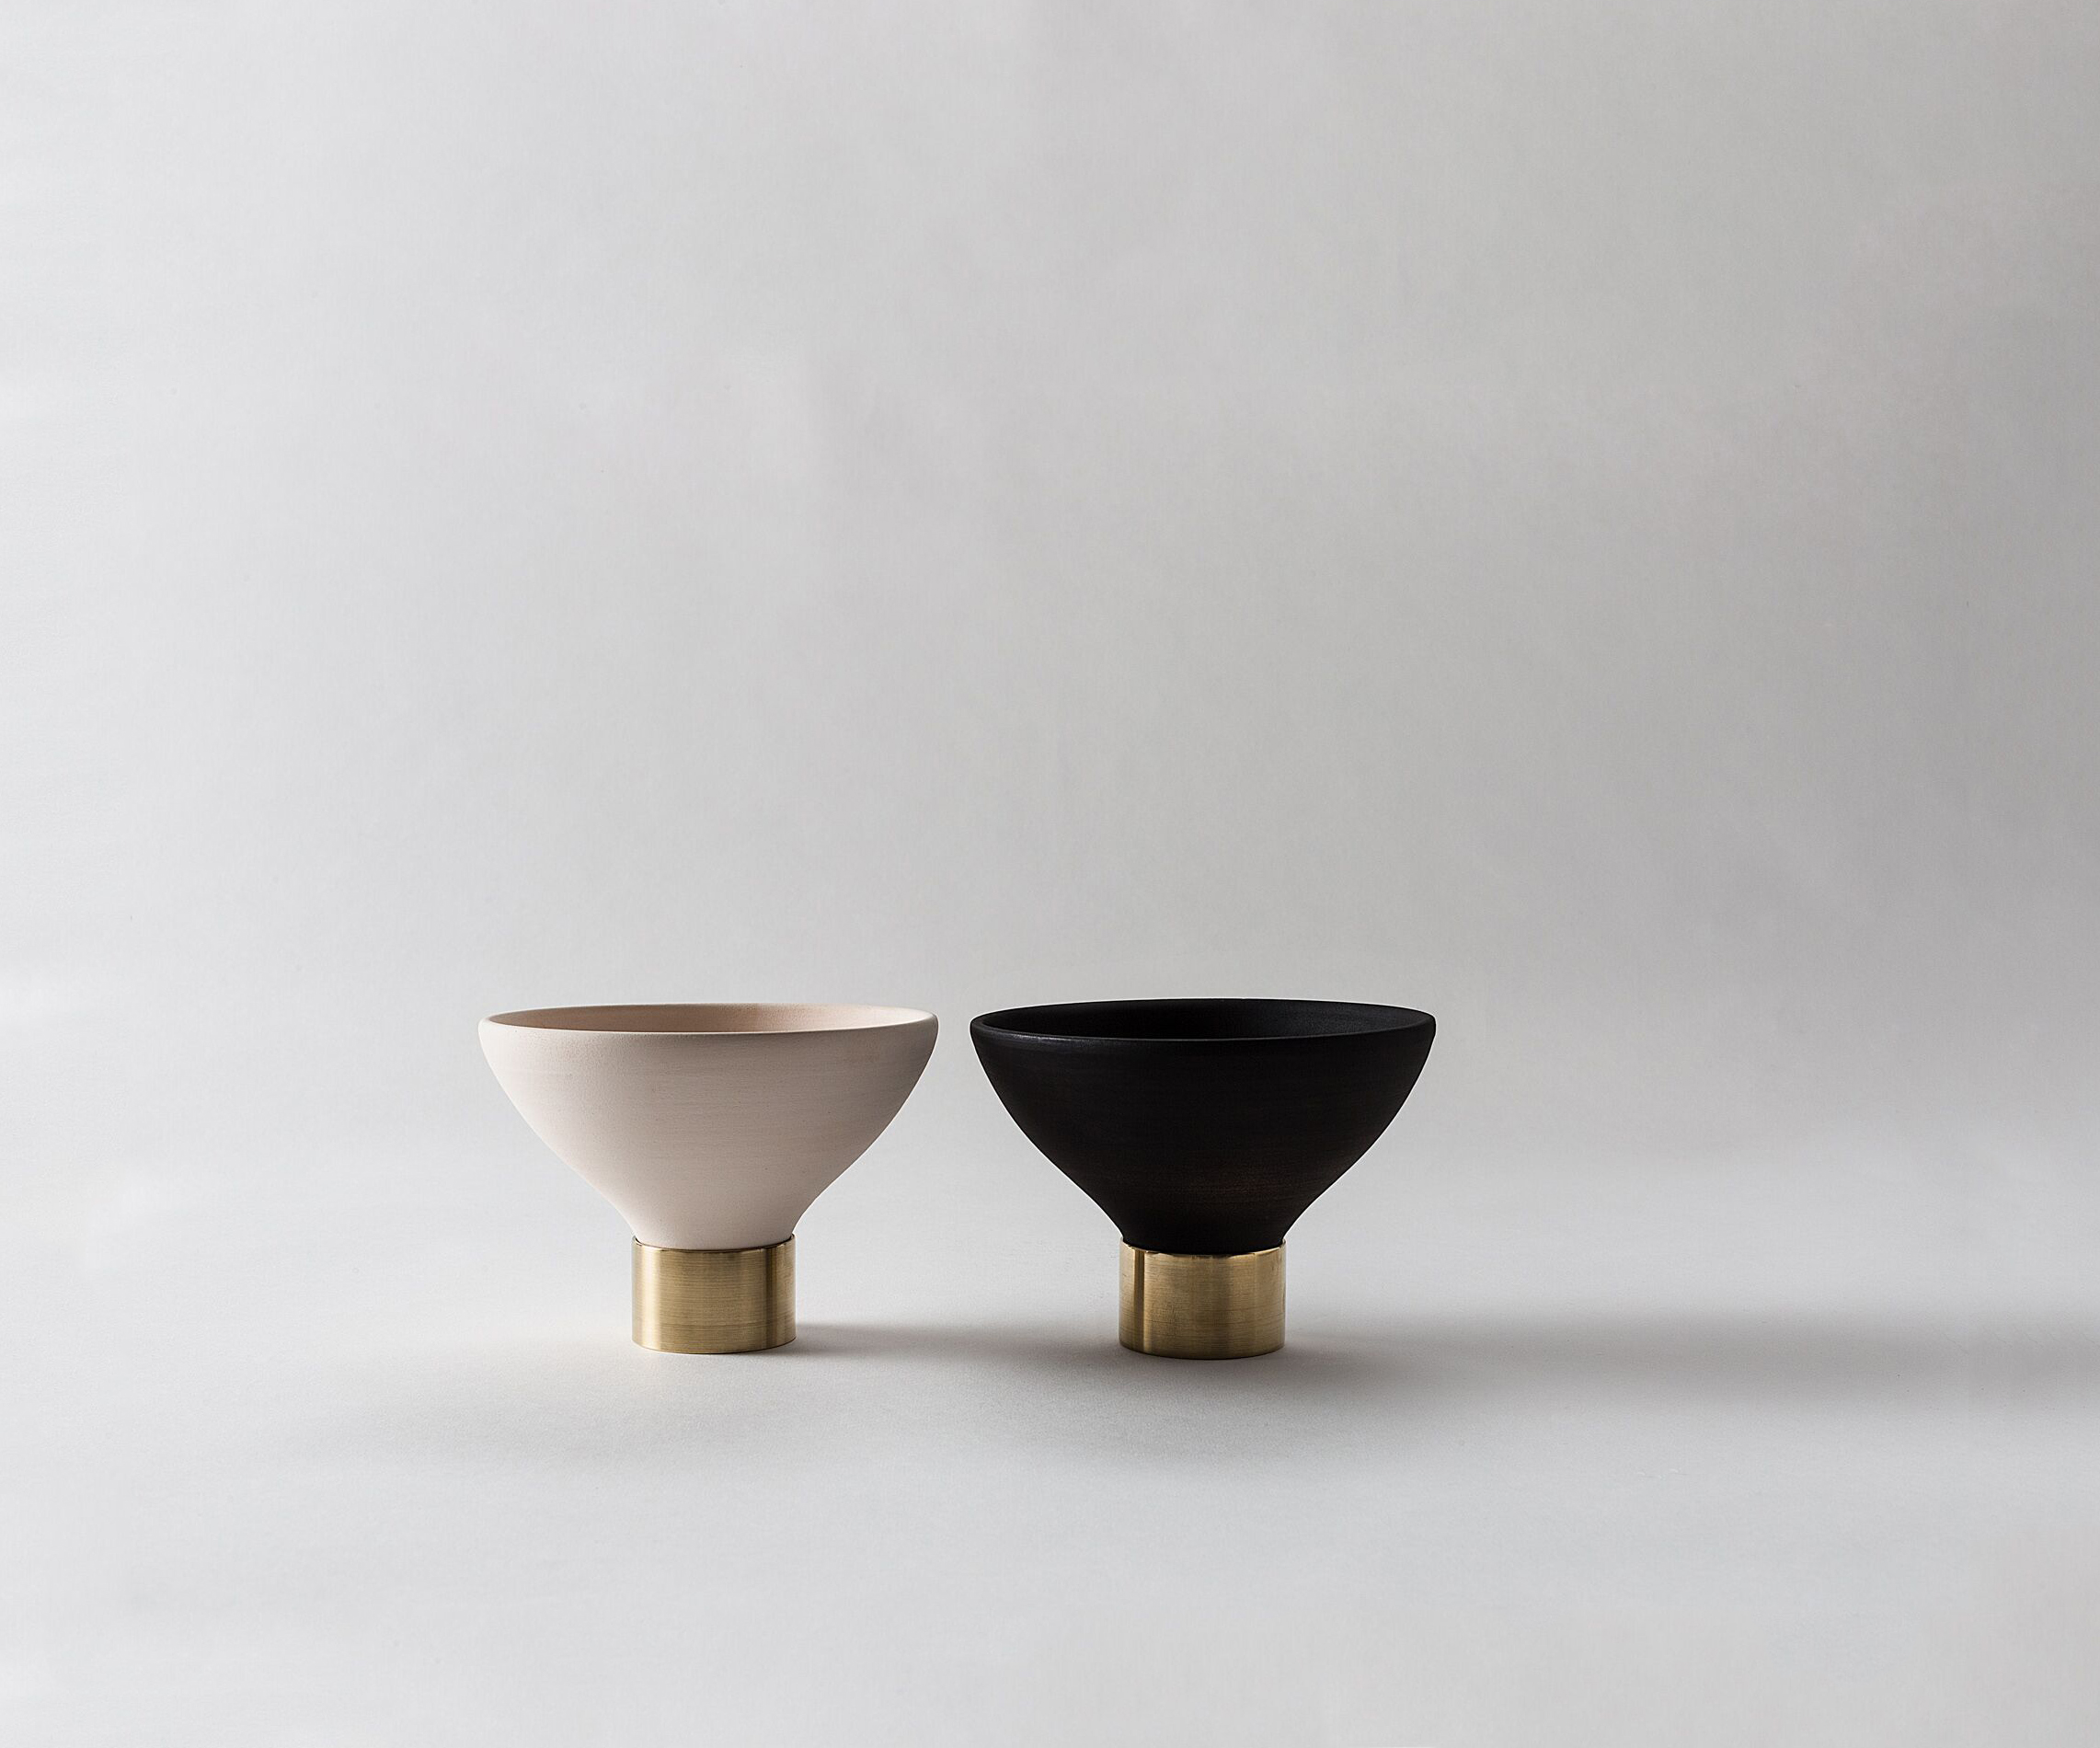 Black & White cups from Analogue collection.